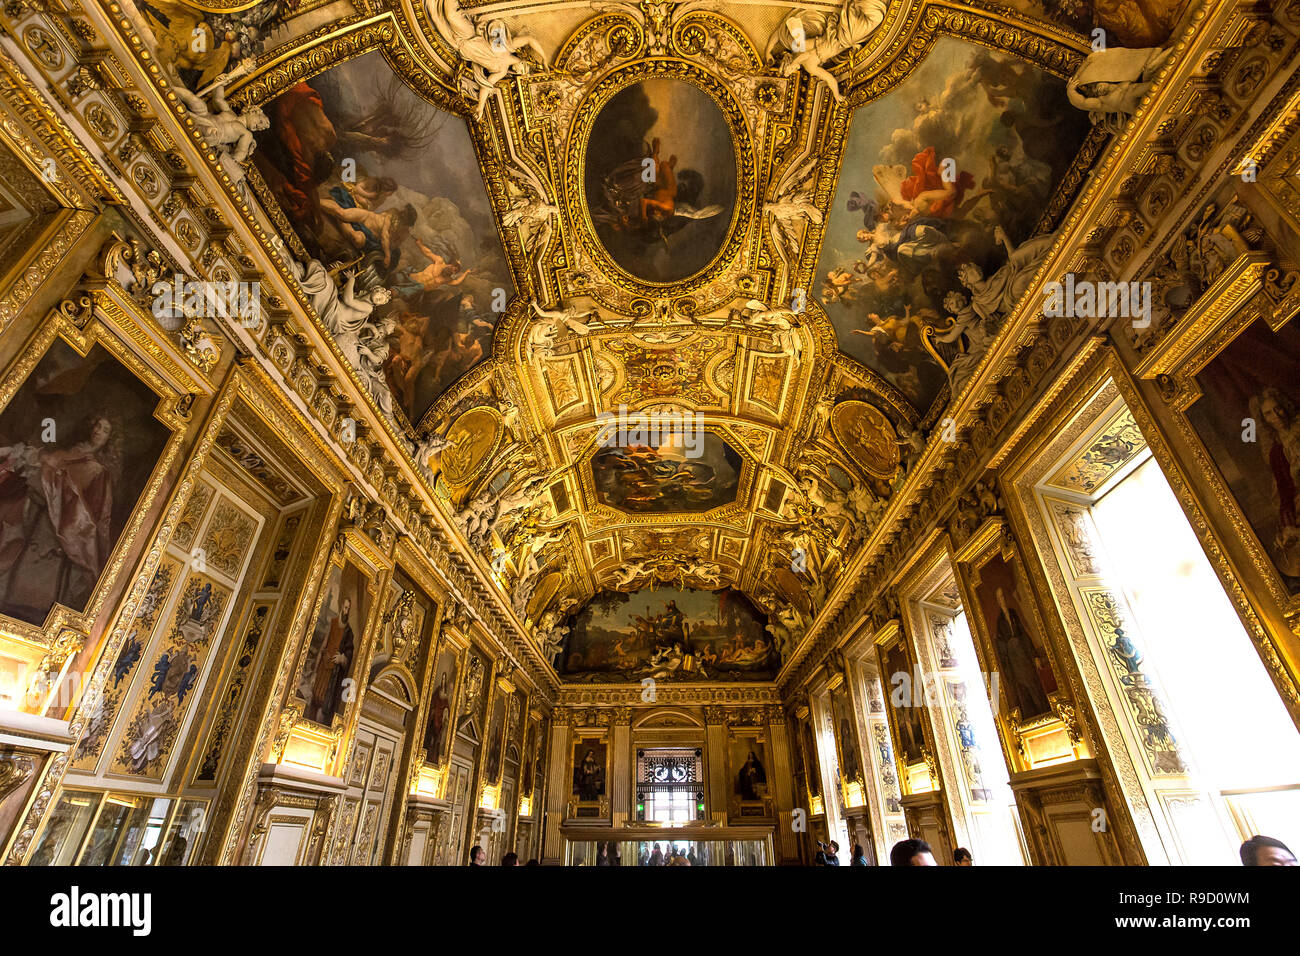 PARIS, FRANCE, MARCH 09, 2017 : architectural details of gallery of Apollon, march 09, 2017, in Paris, France - Stock Image